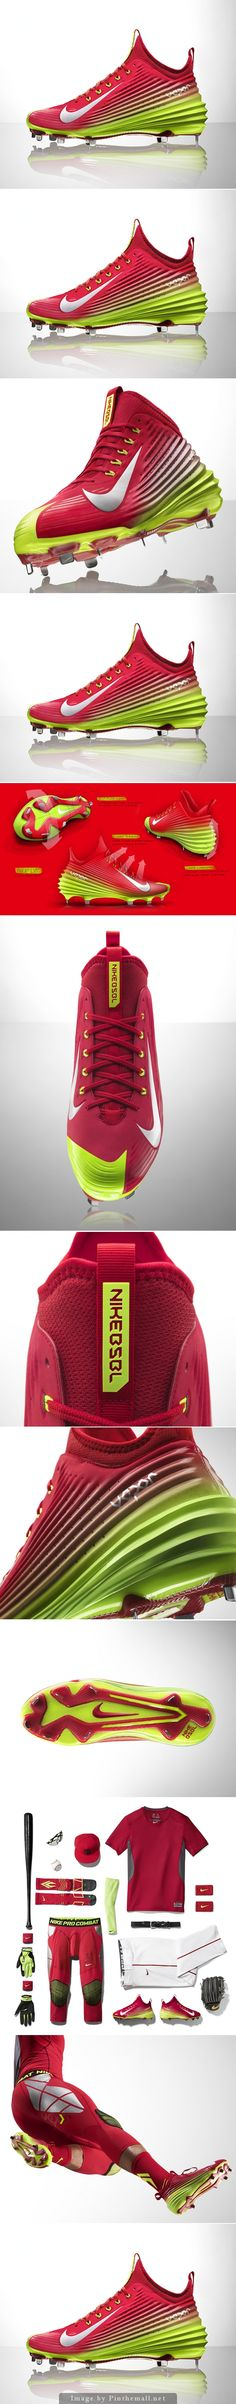 Nike_baseball_Vapor_collection_09 | 8. Detail-CMF-Pattern V1.0 | Pinterest  | Nike Vapor, Footwear and Product design